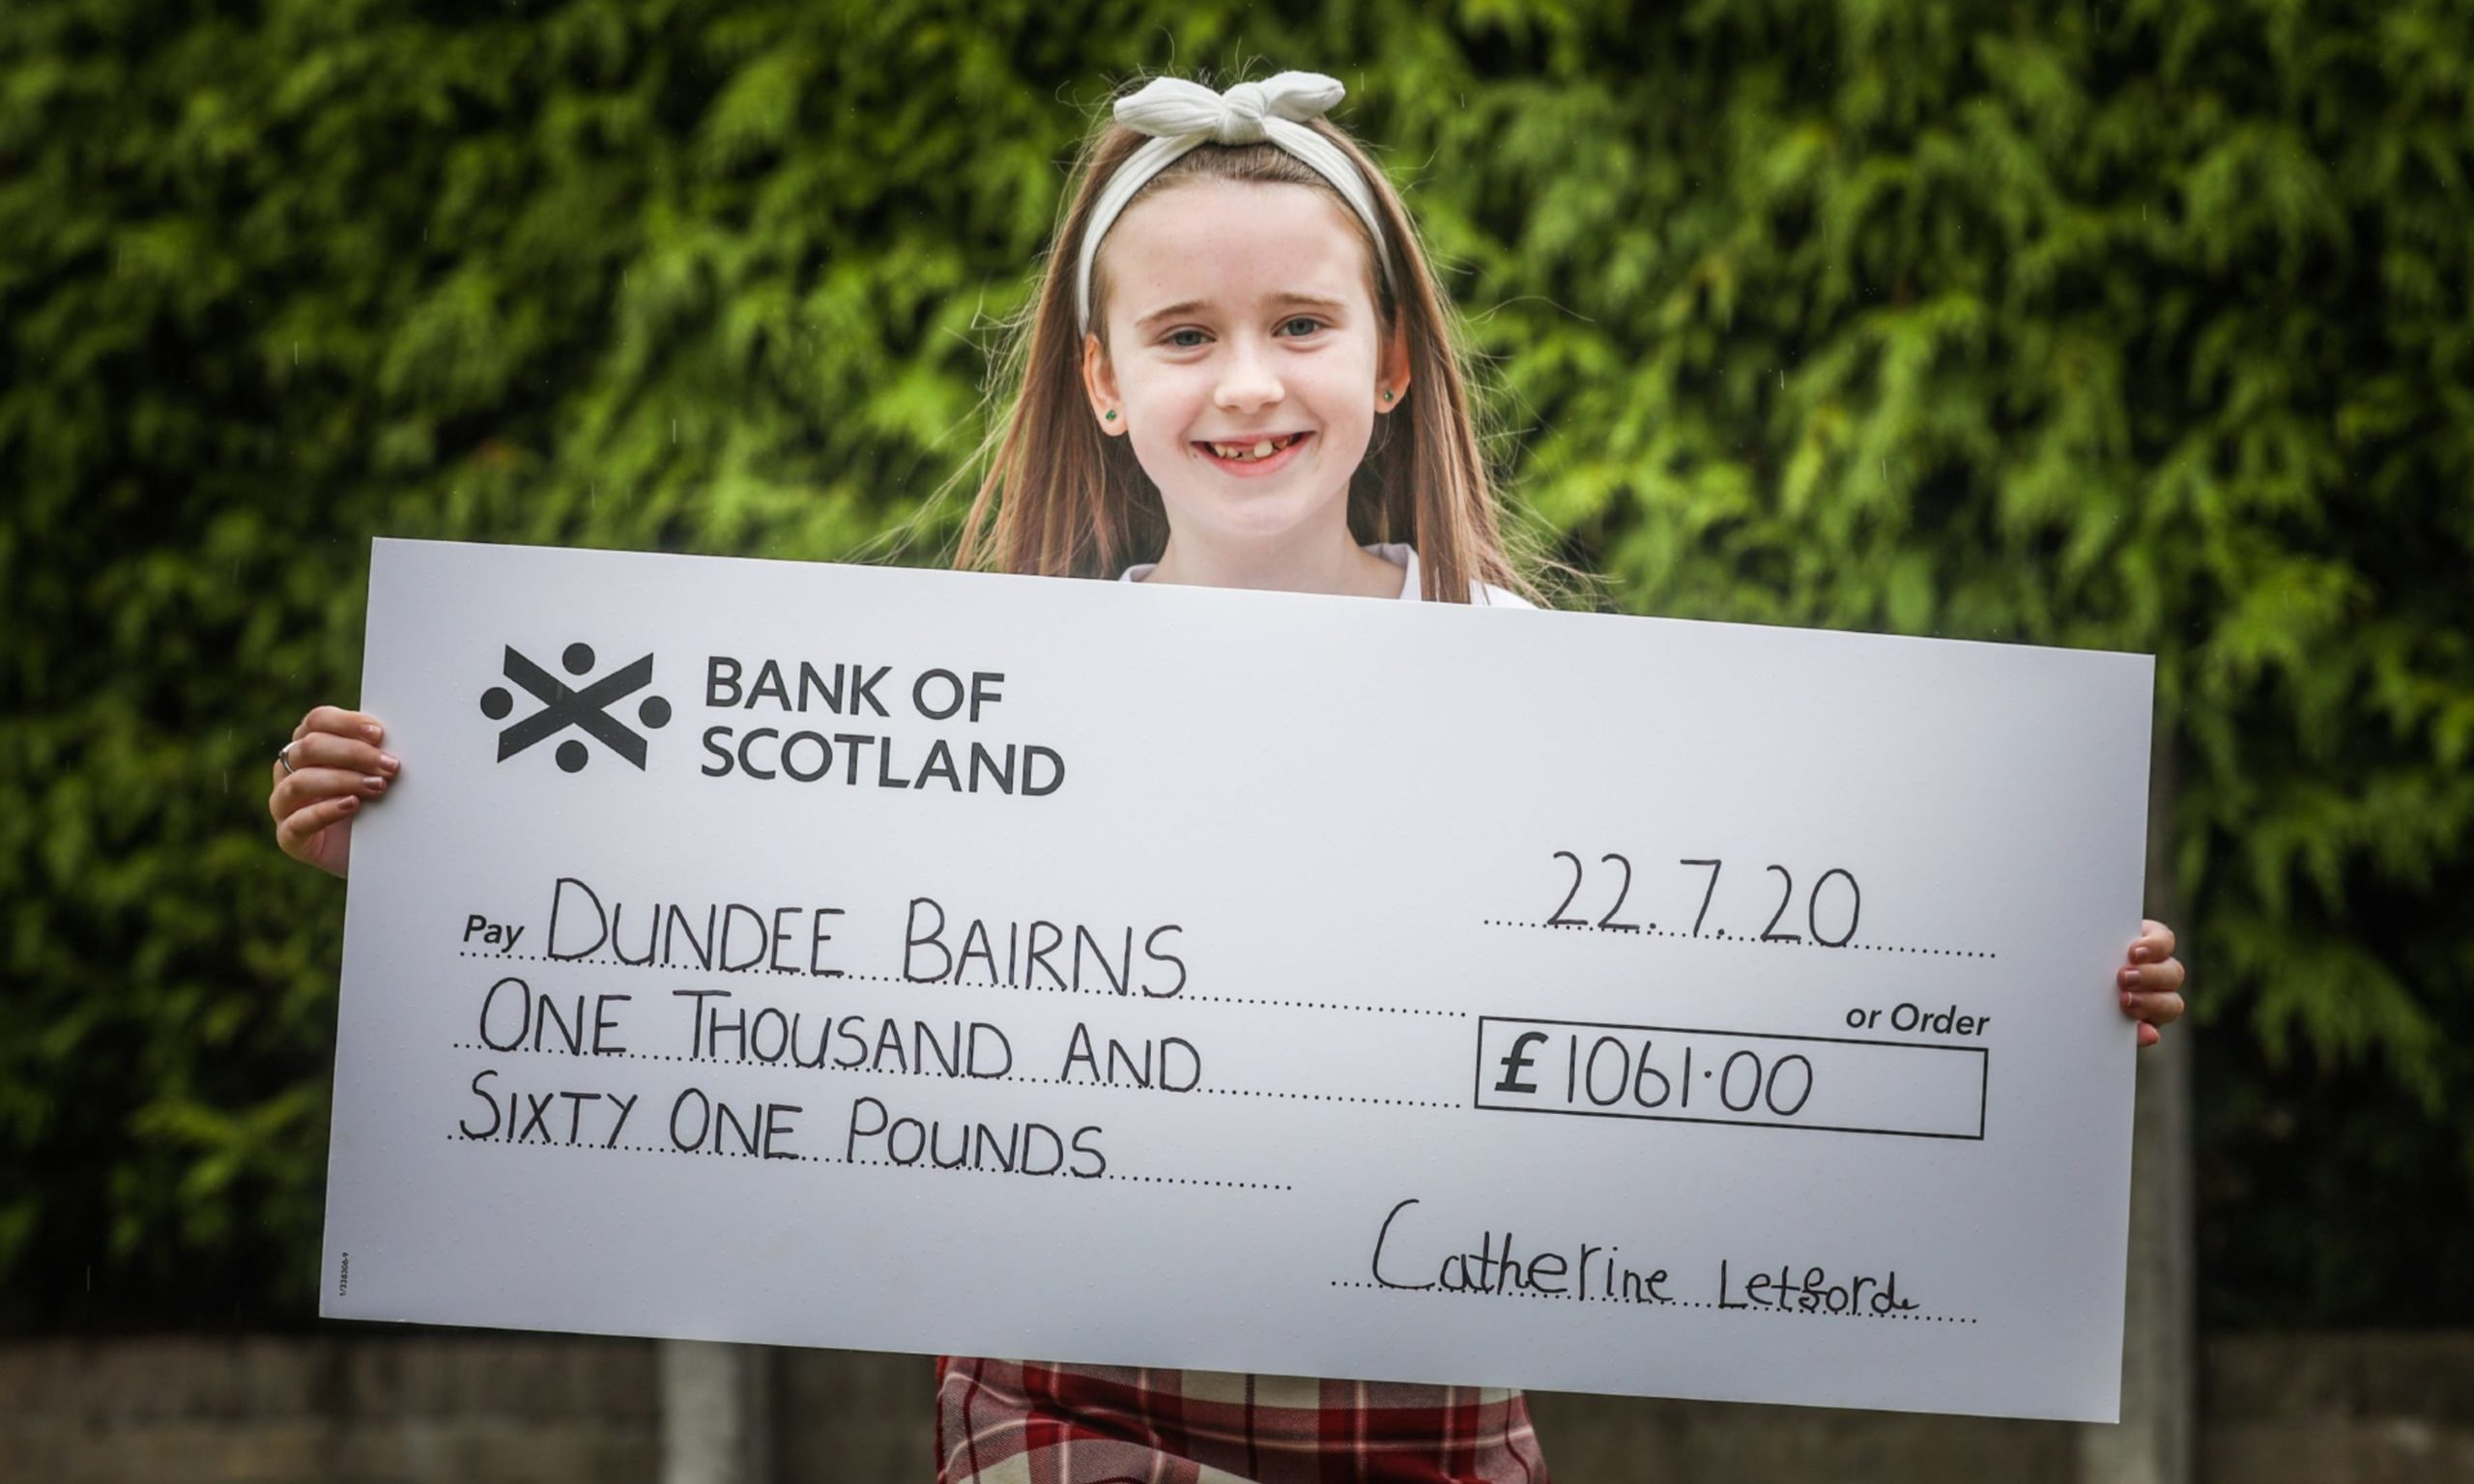 Catherine also fundraised earlier this year for Dundee Bairns.